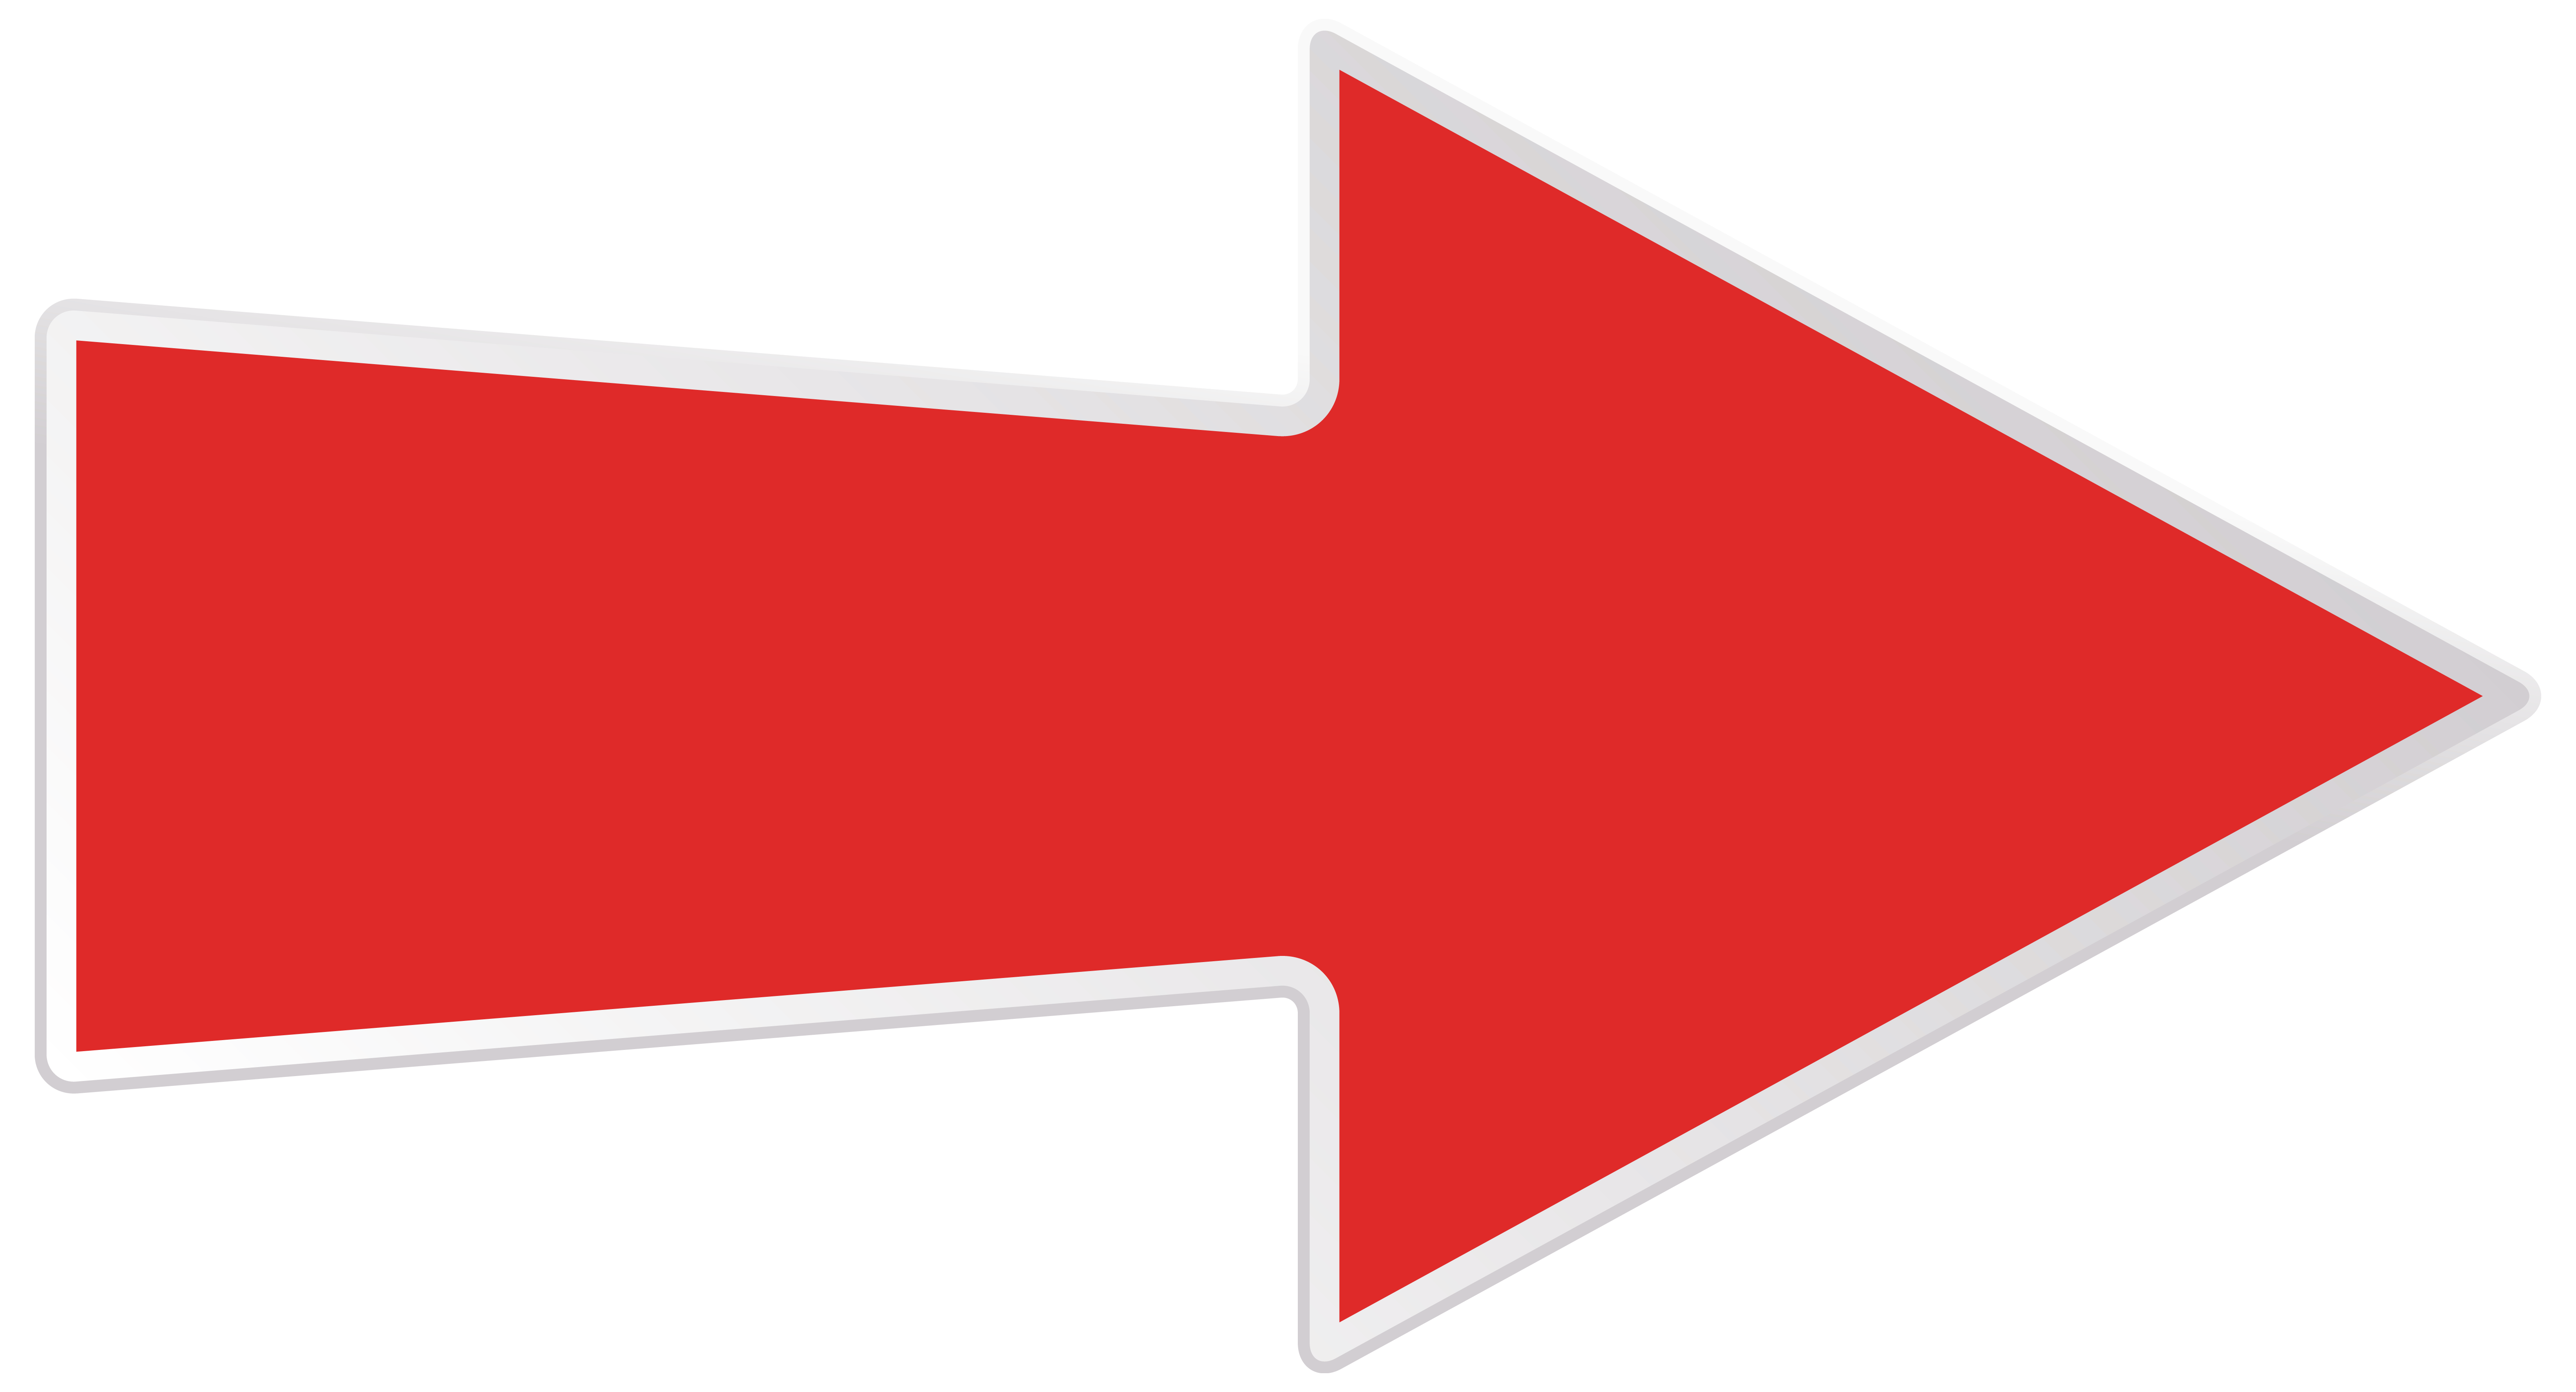 Transparent clip art image. Red right arrow png picture freeuse stock